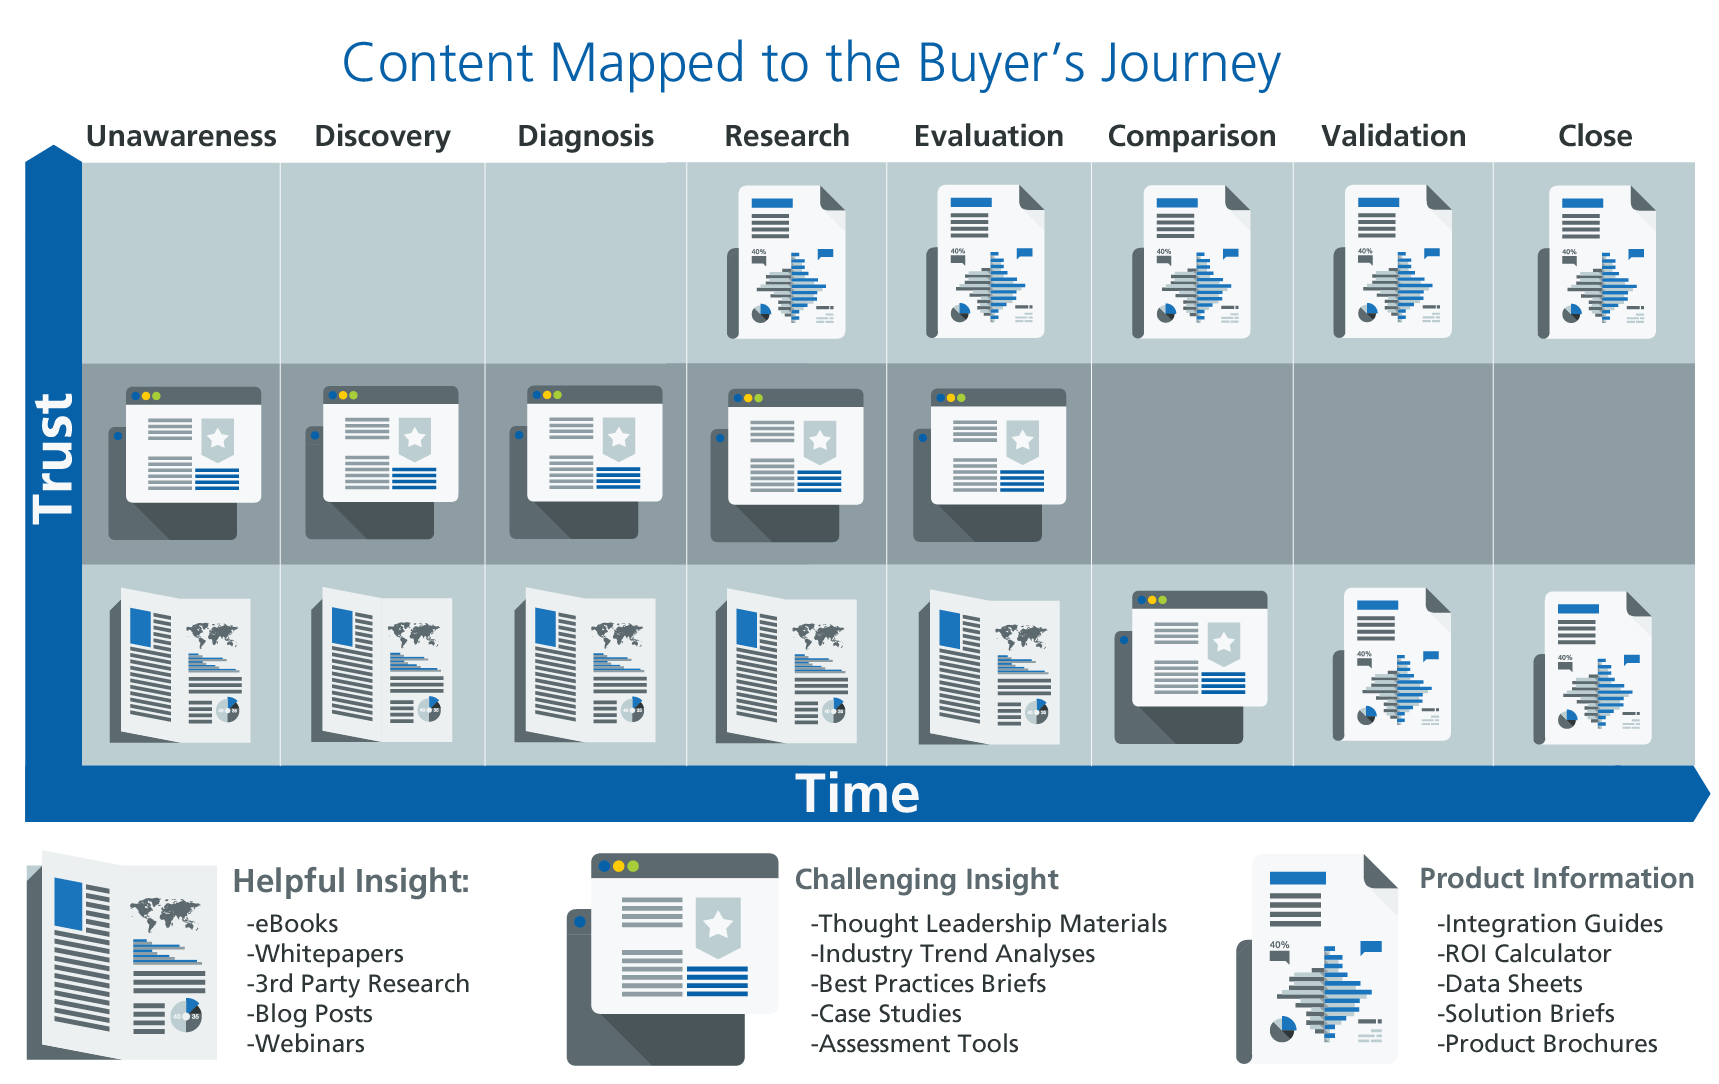 Buyer's journey with content